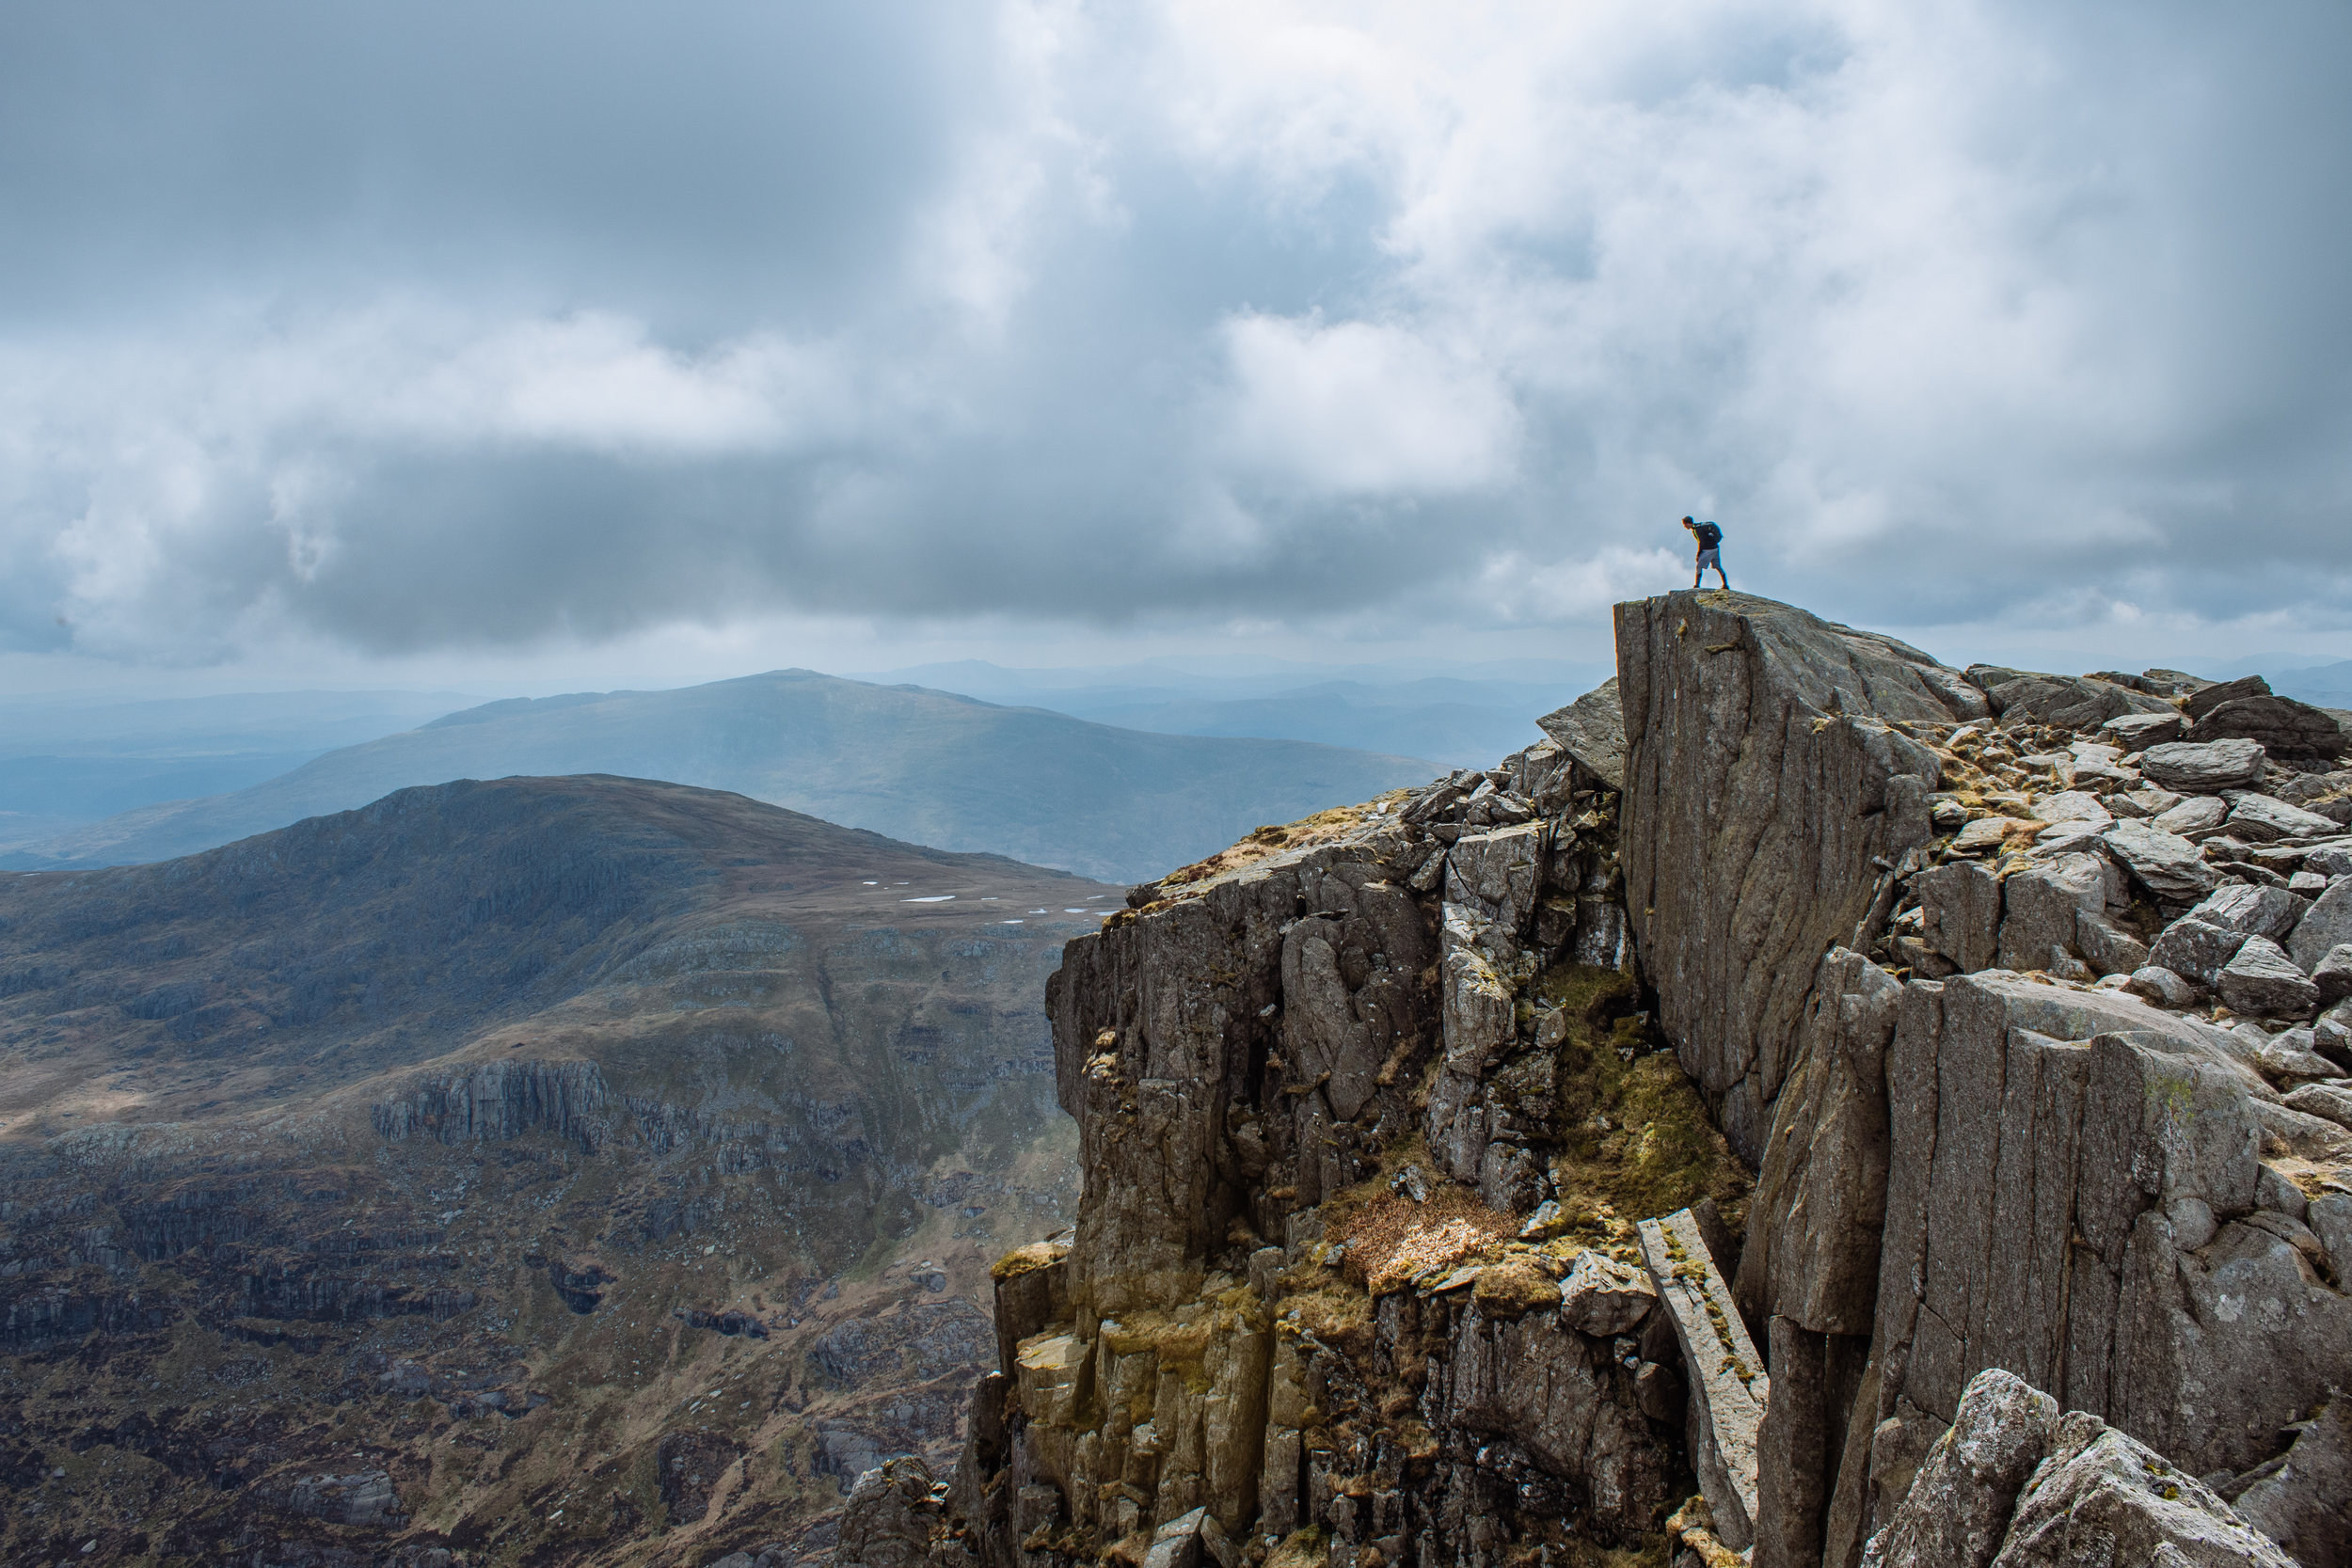 The view from the top of Tryfan